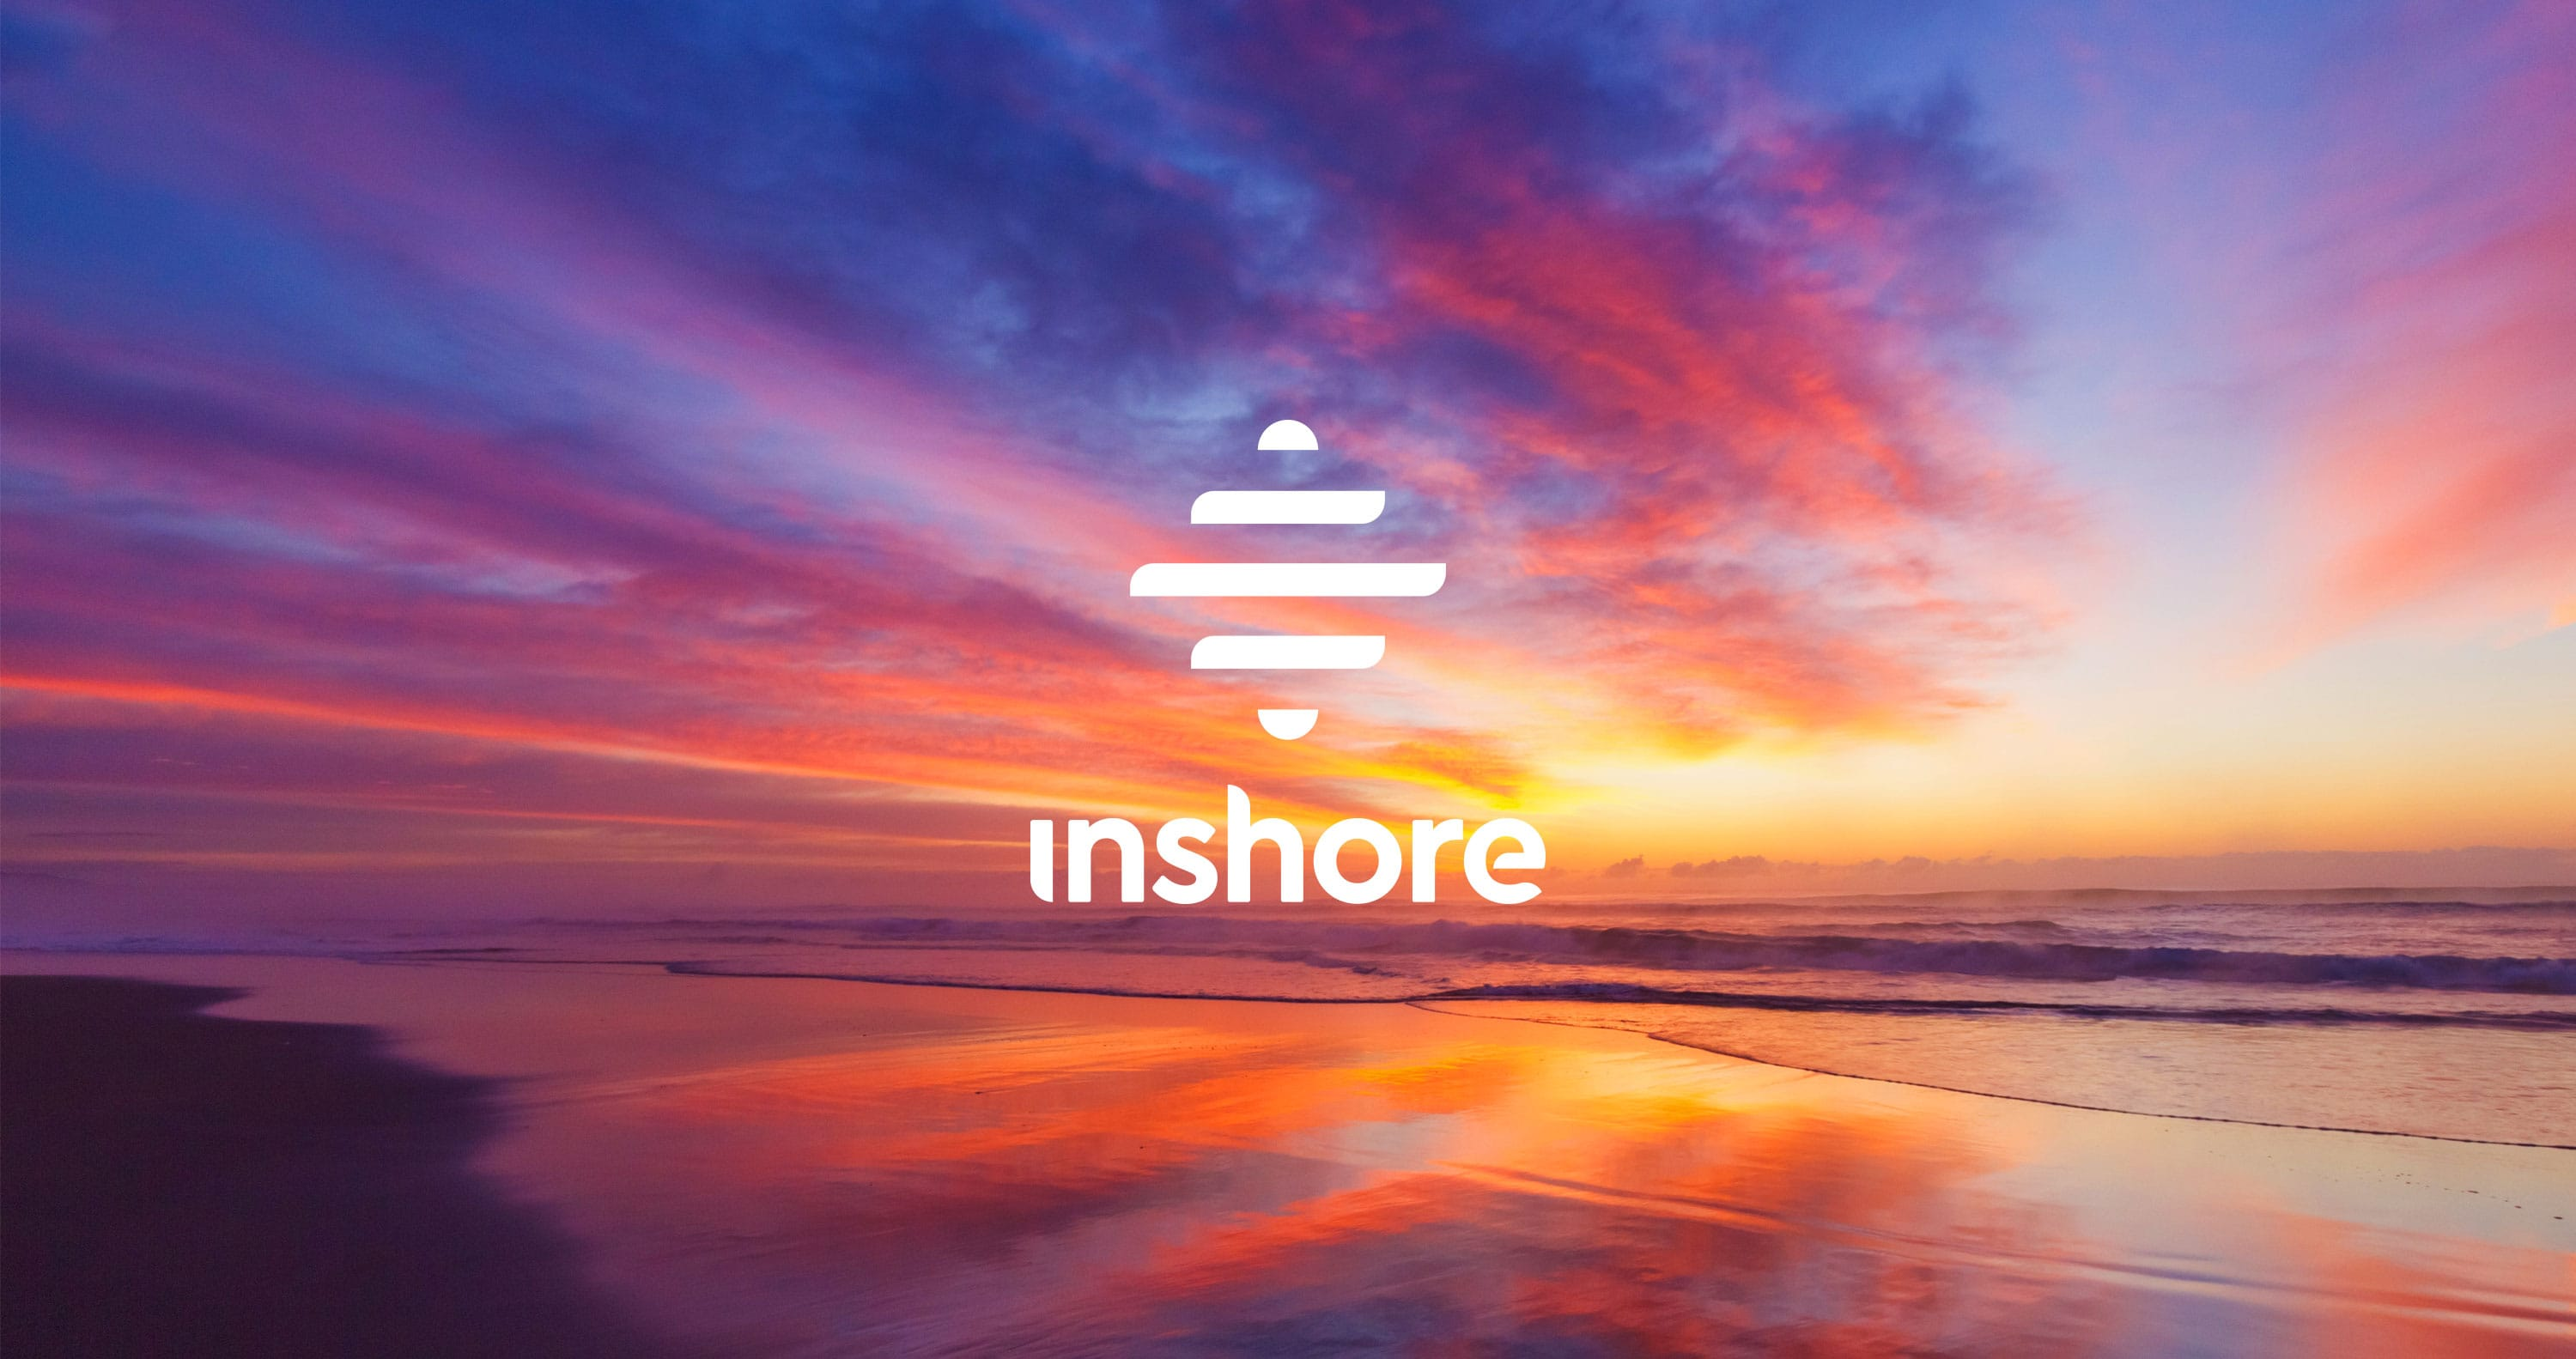 inshore marketing project